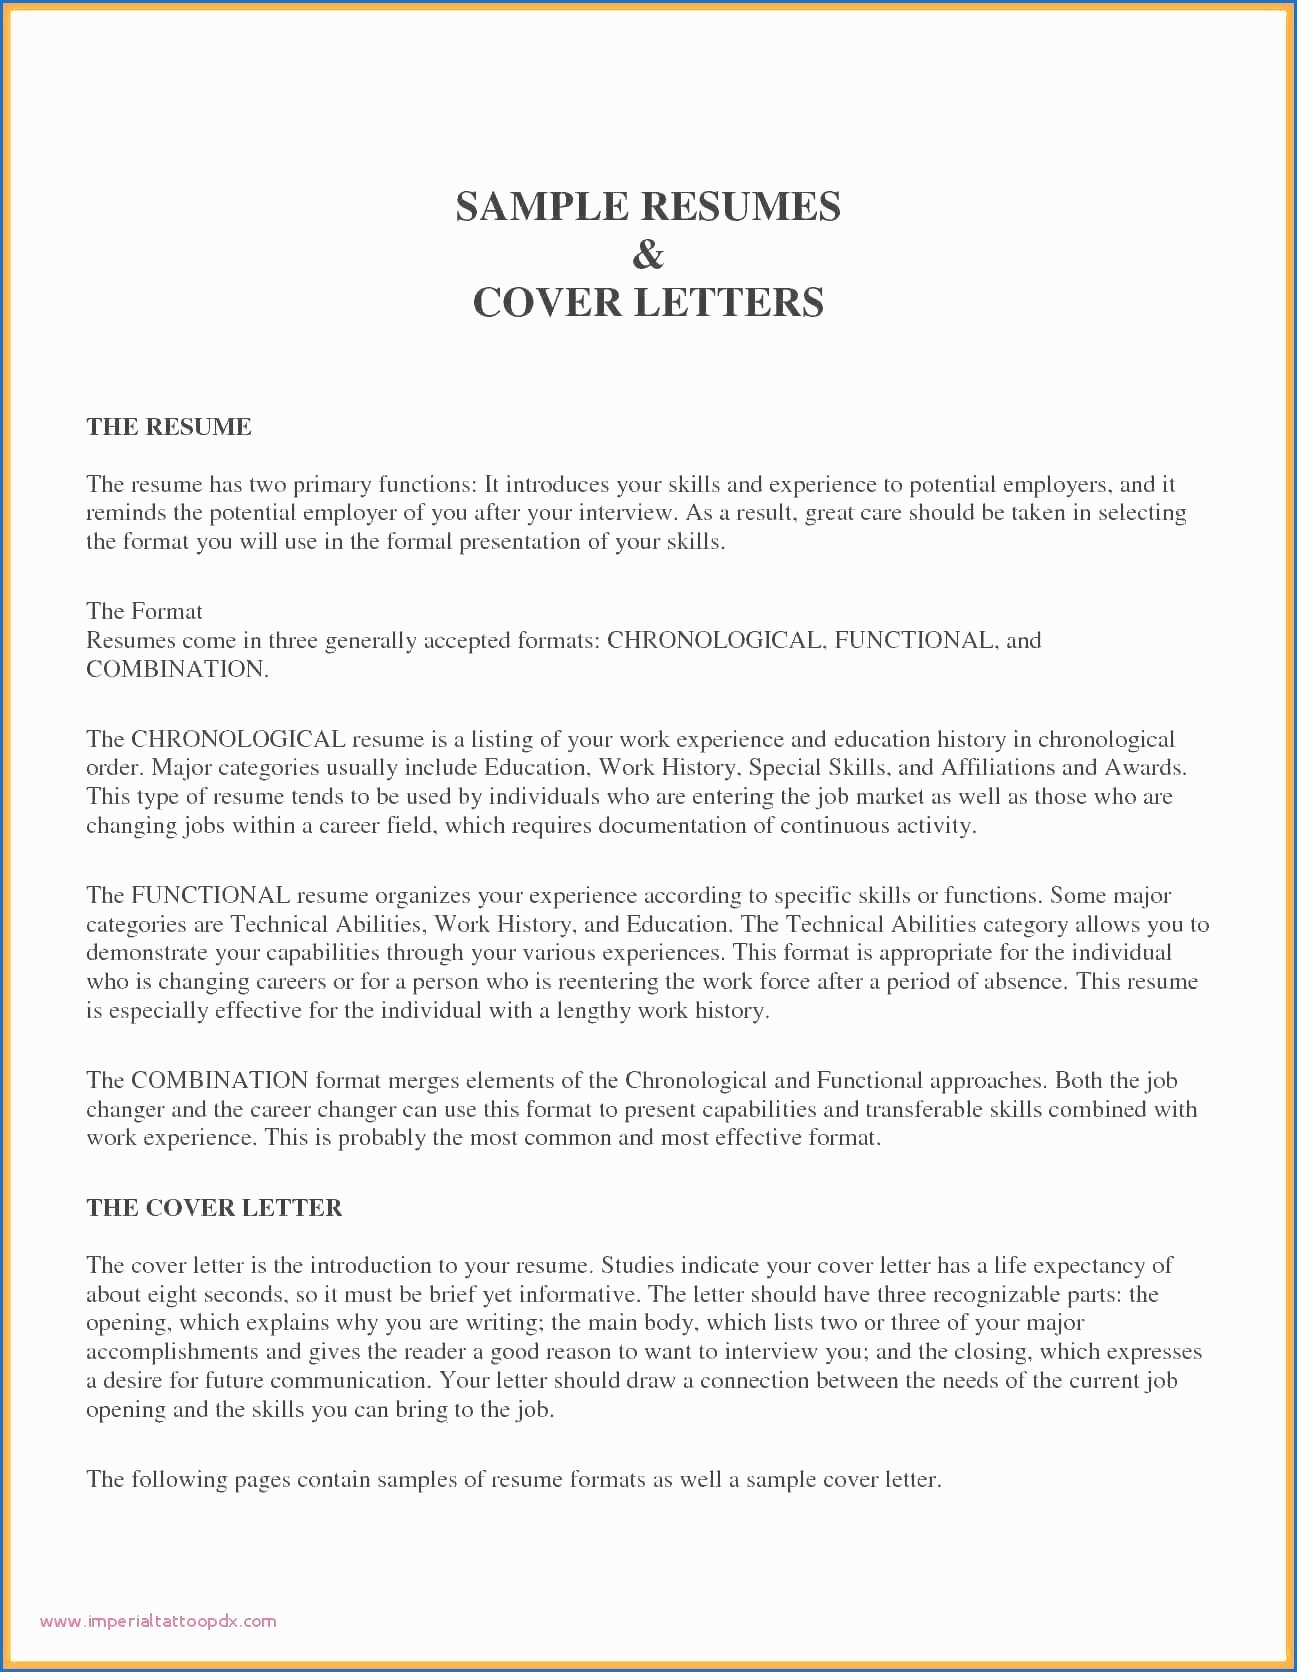 Elements Of A Cover Letter Beautiful 14 Resume Objective Examples Beauty Industry